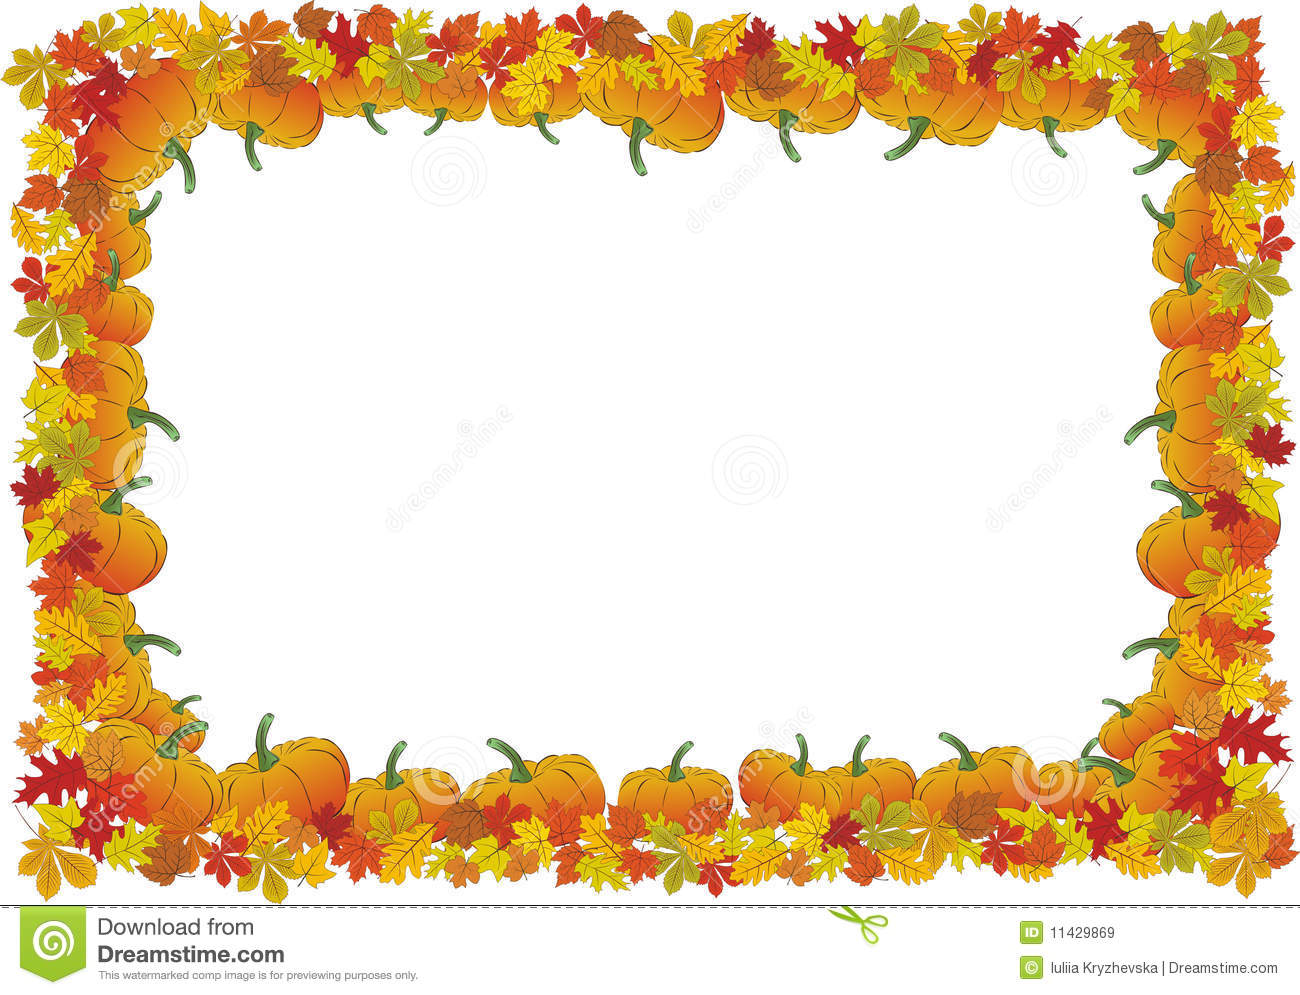 Thanksgiving borders clip art ... 07368c634f5f27fd8cac6b2caf3493 .